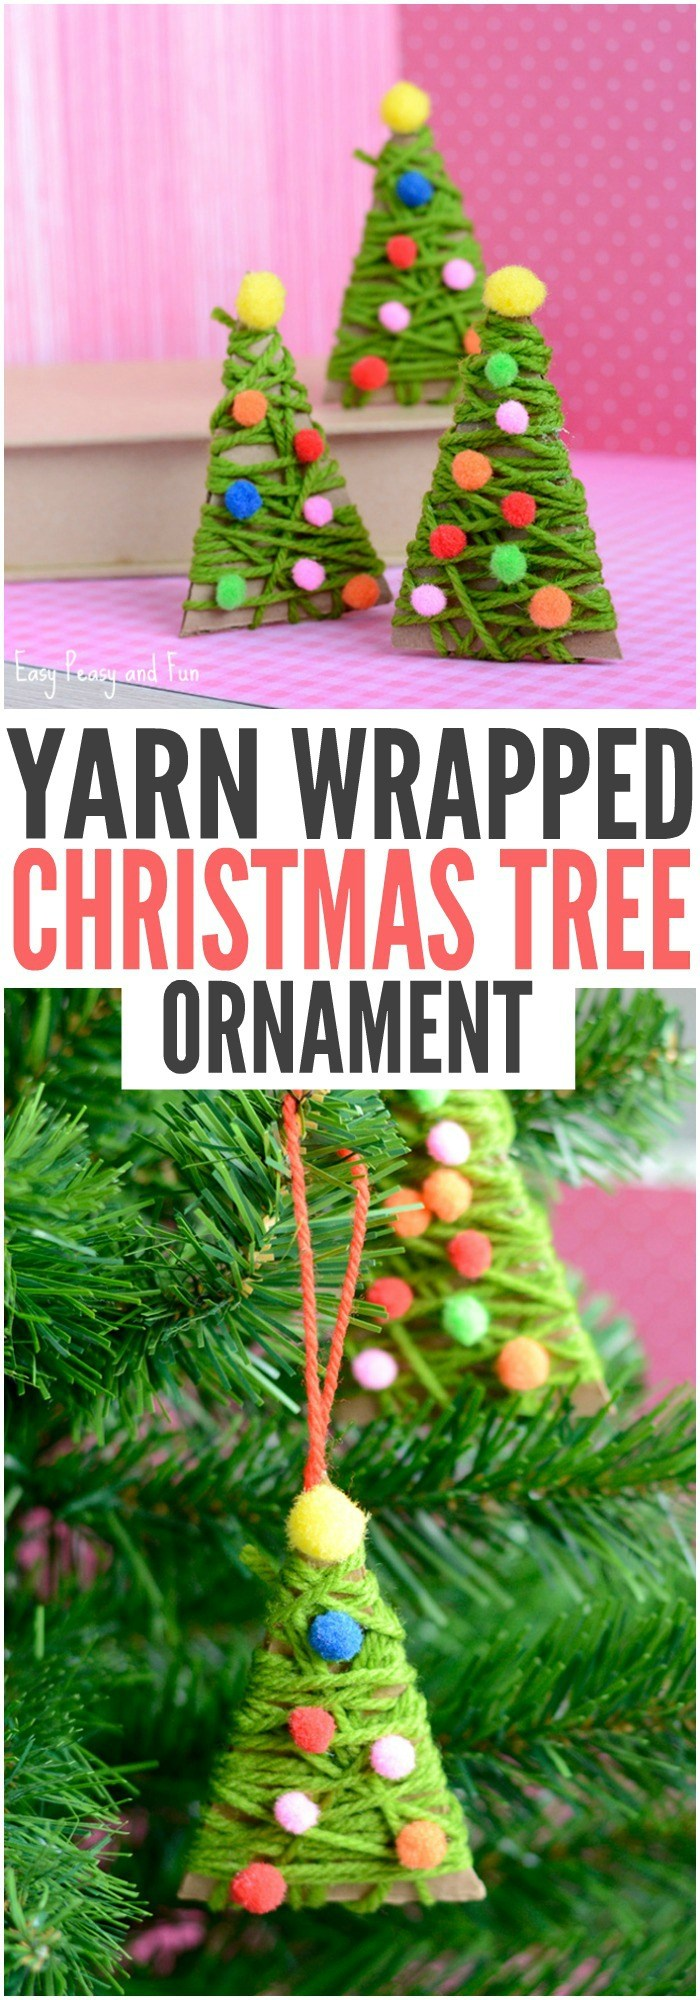 Yarn Wrapped Christmas Tree Ornaments